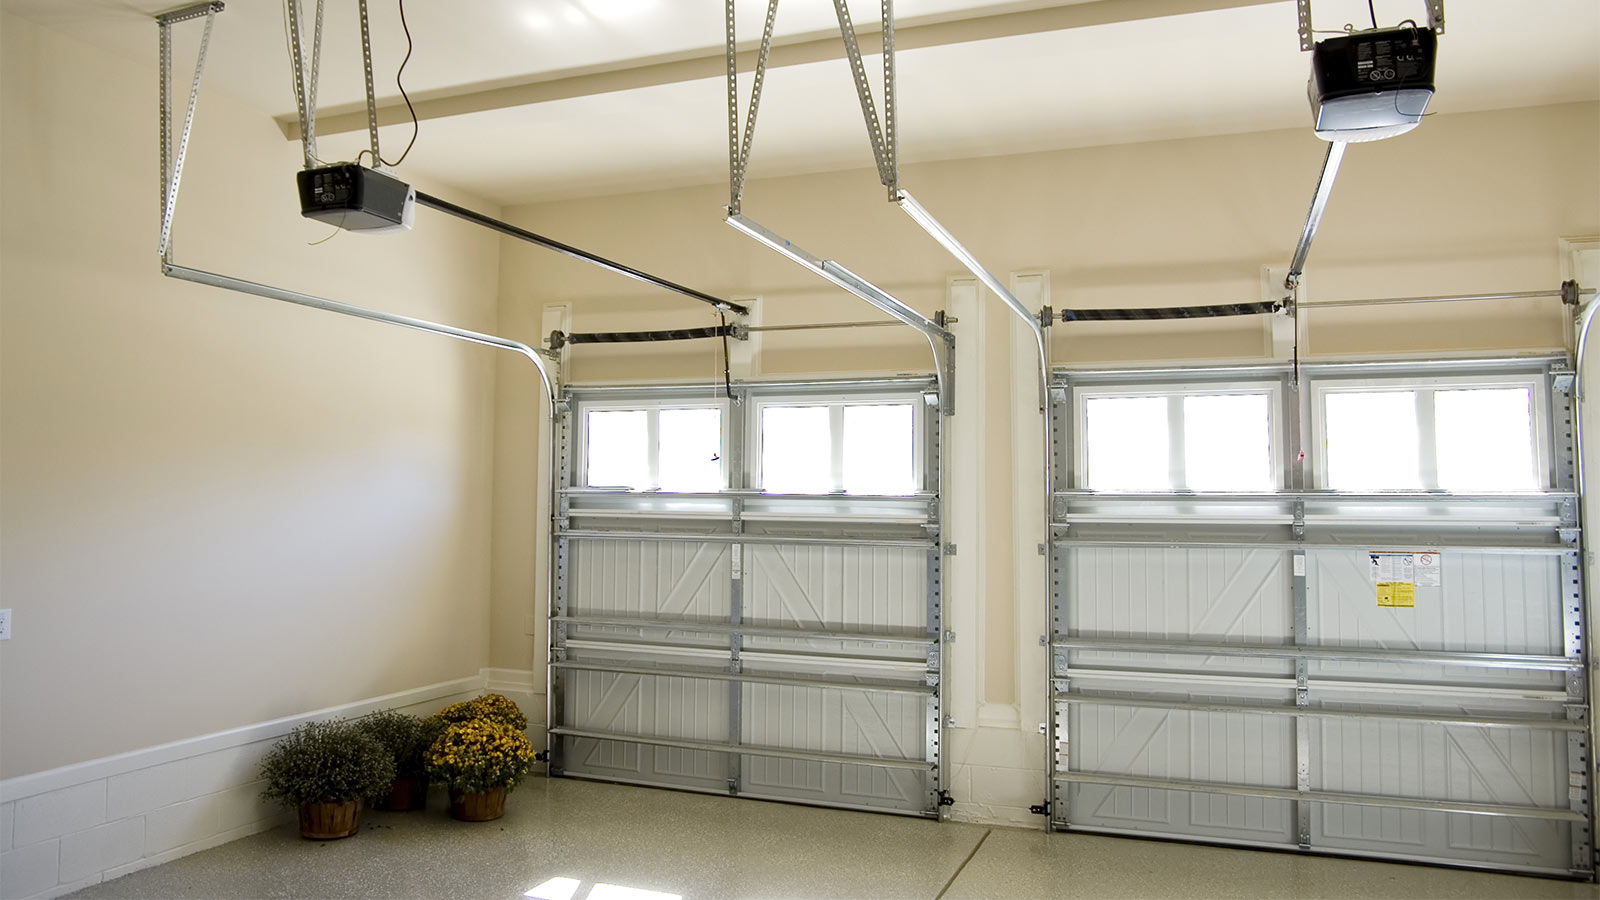 Sectional Garage Doors from Electric Roller Garage Doors Maidstone suppliers.